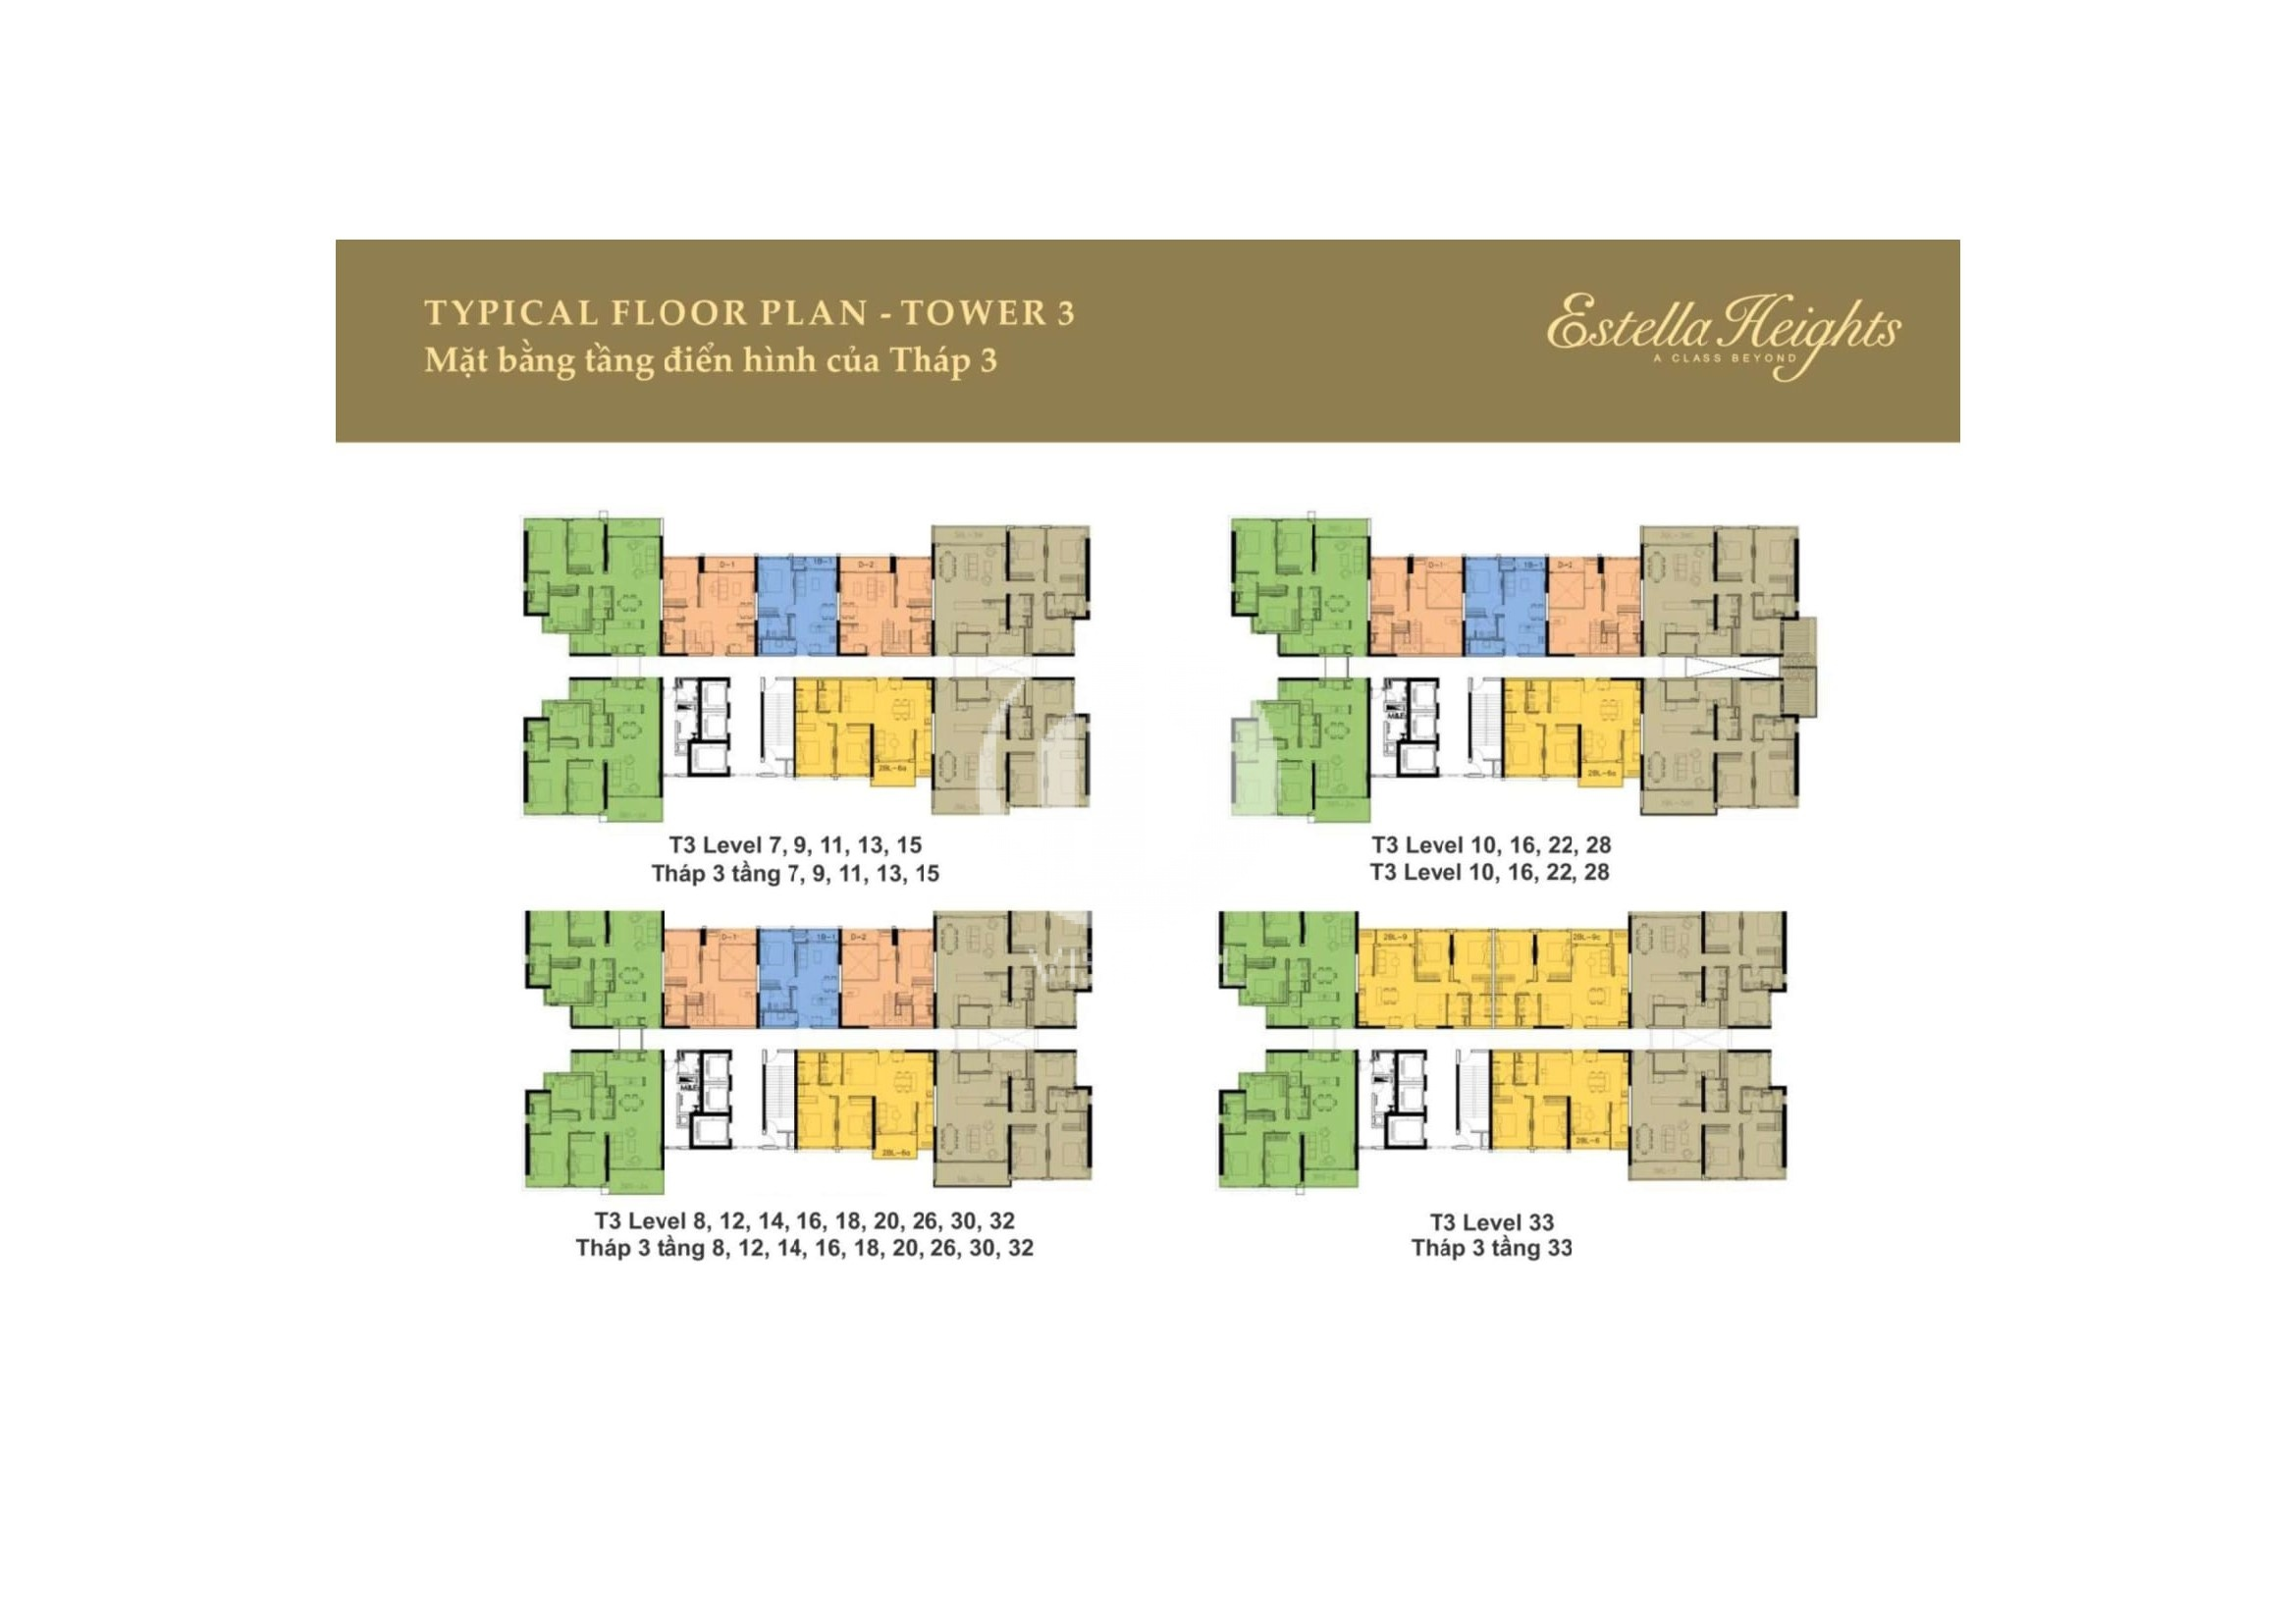 Layout of Tower 3 in Estella Heights apartment